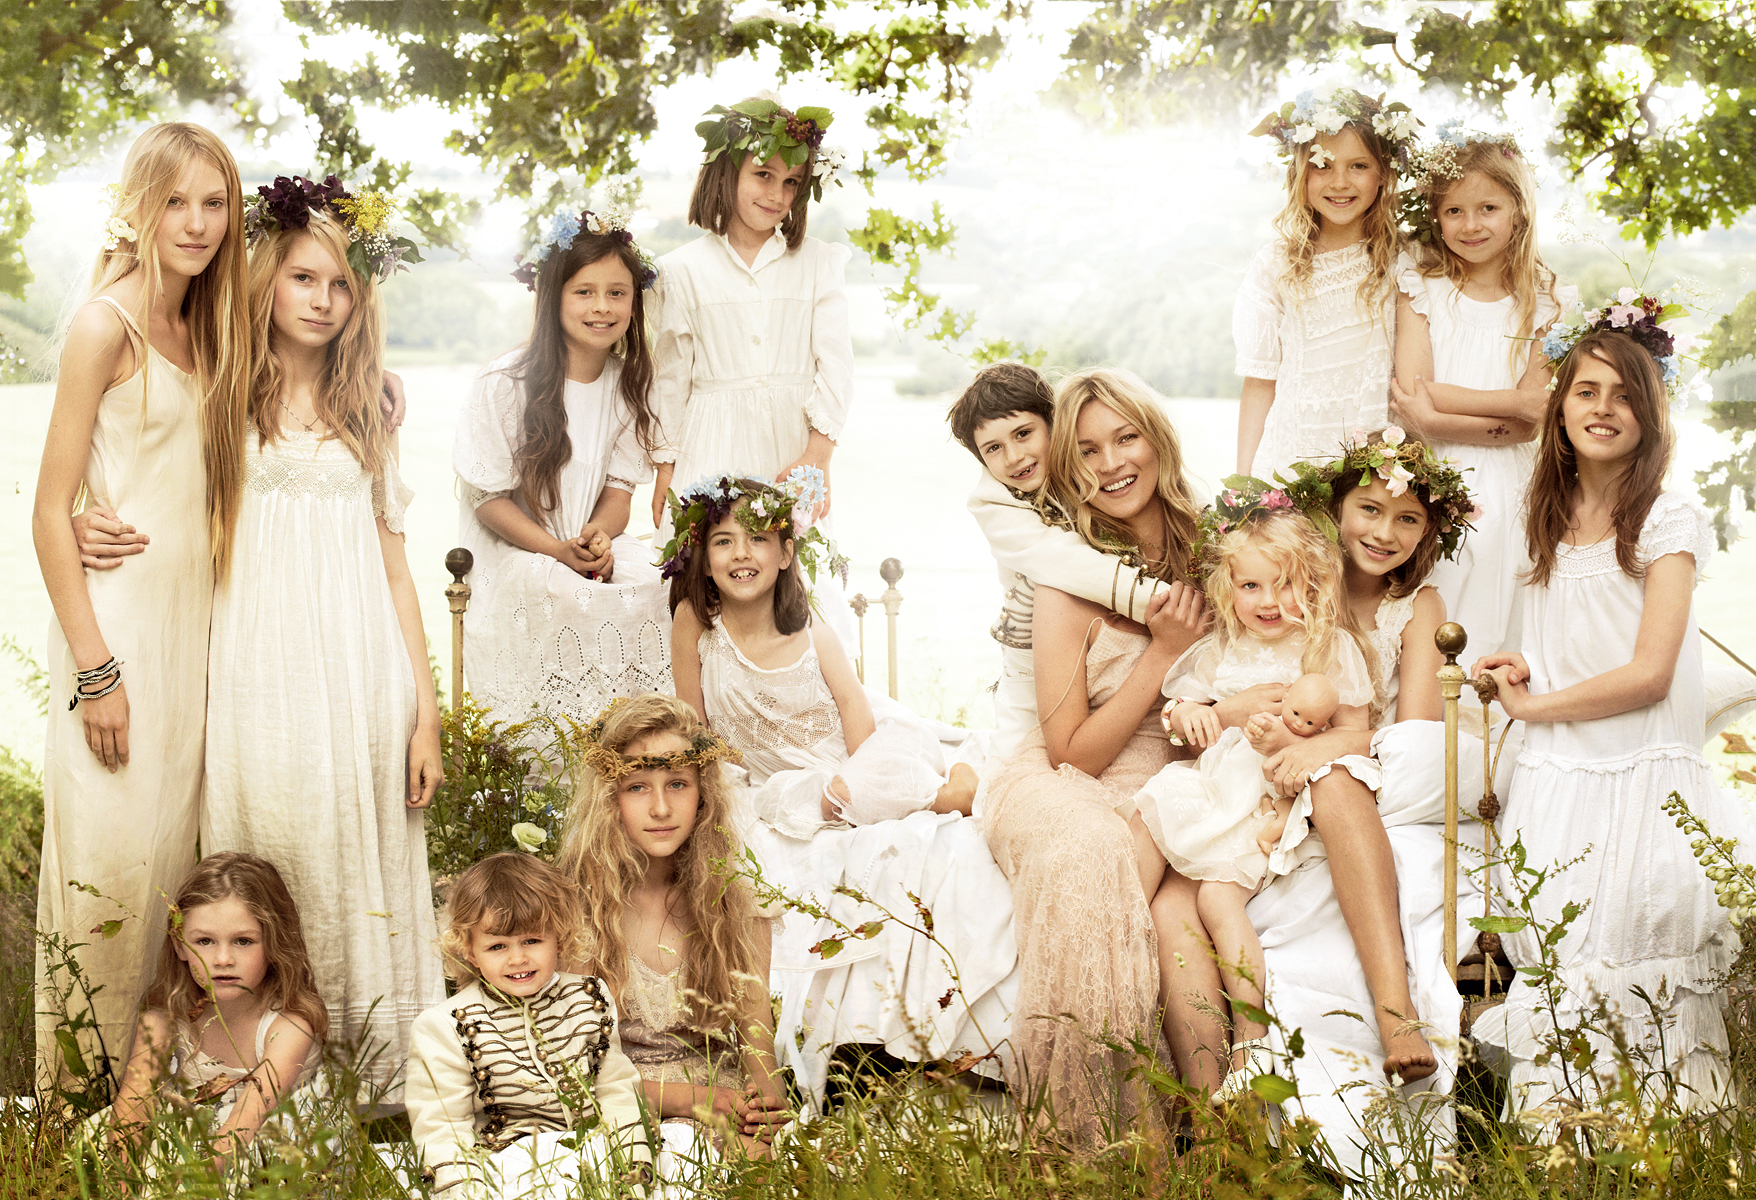 Kate-moss-wedding-ethereal-bohemian-bridal-style-bridesmaids-flower-girls.original